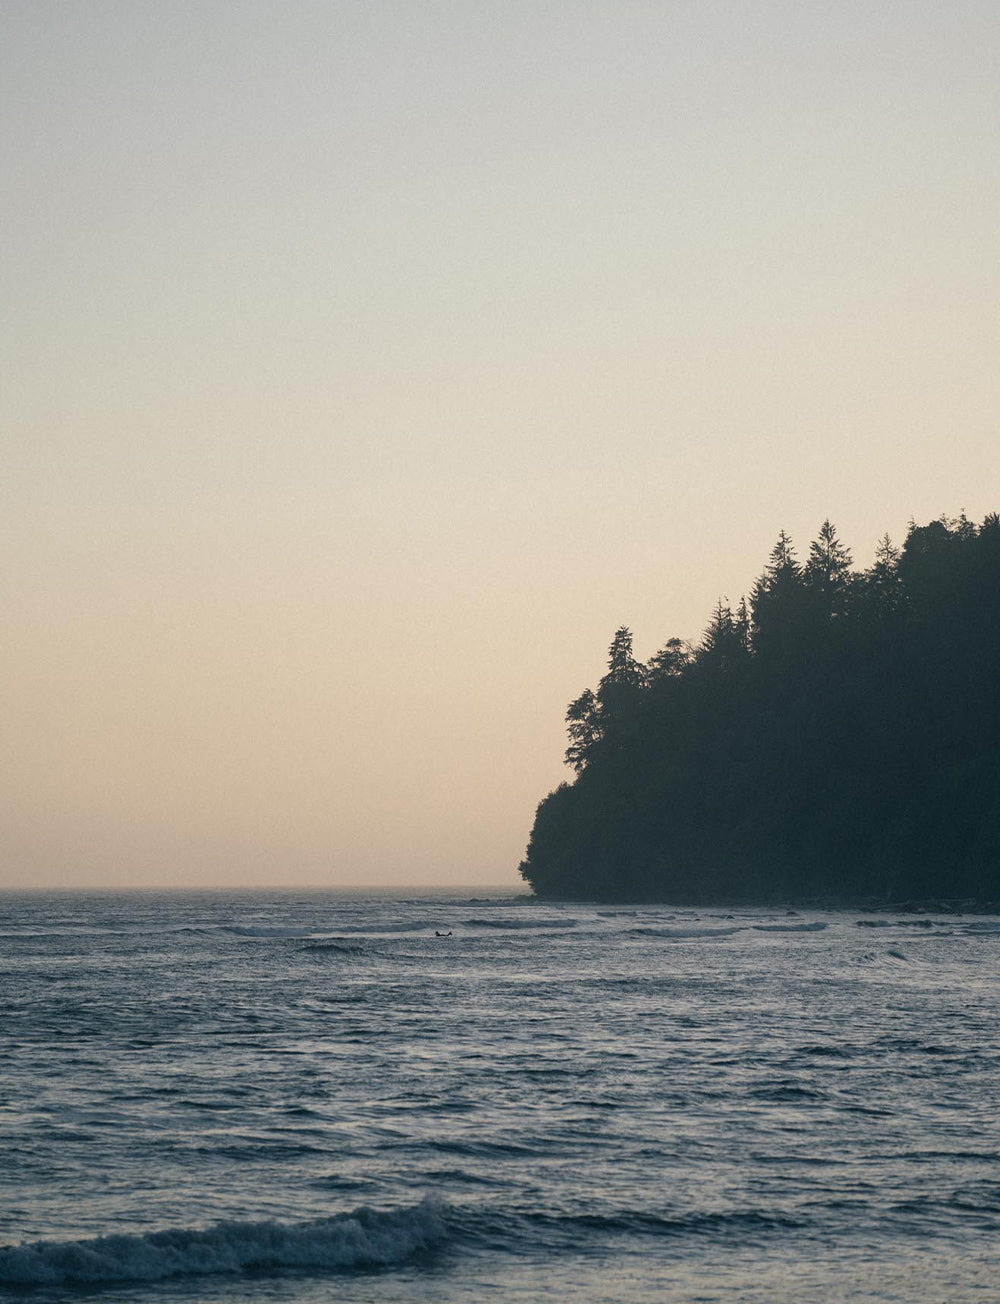 A classic Pacific North West scene with dense trees overhanging waves in the ocean.